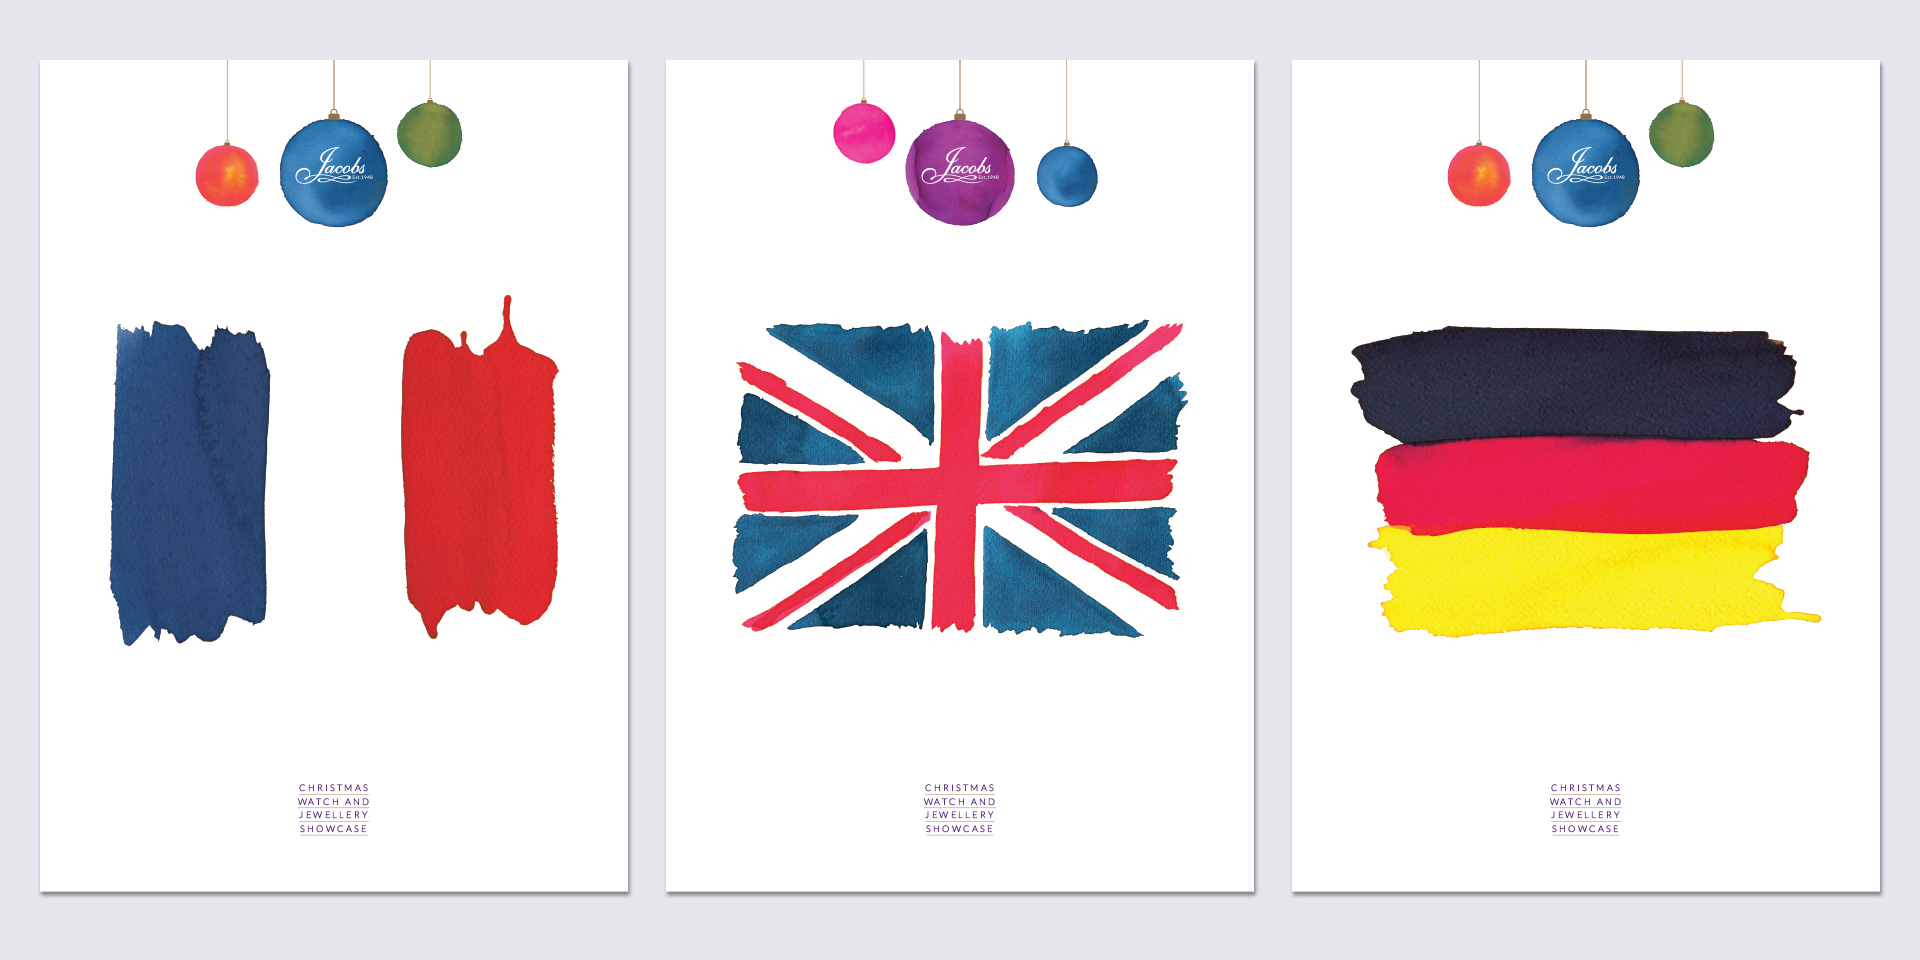 Jacobs Christmas 2015 Exhibition Posters